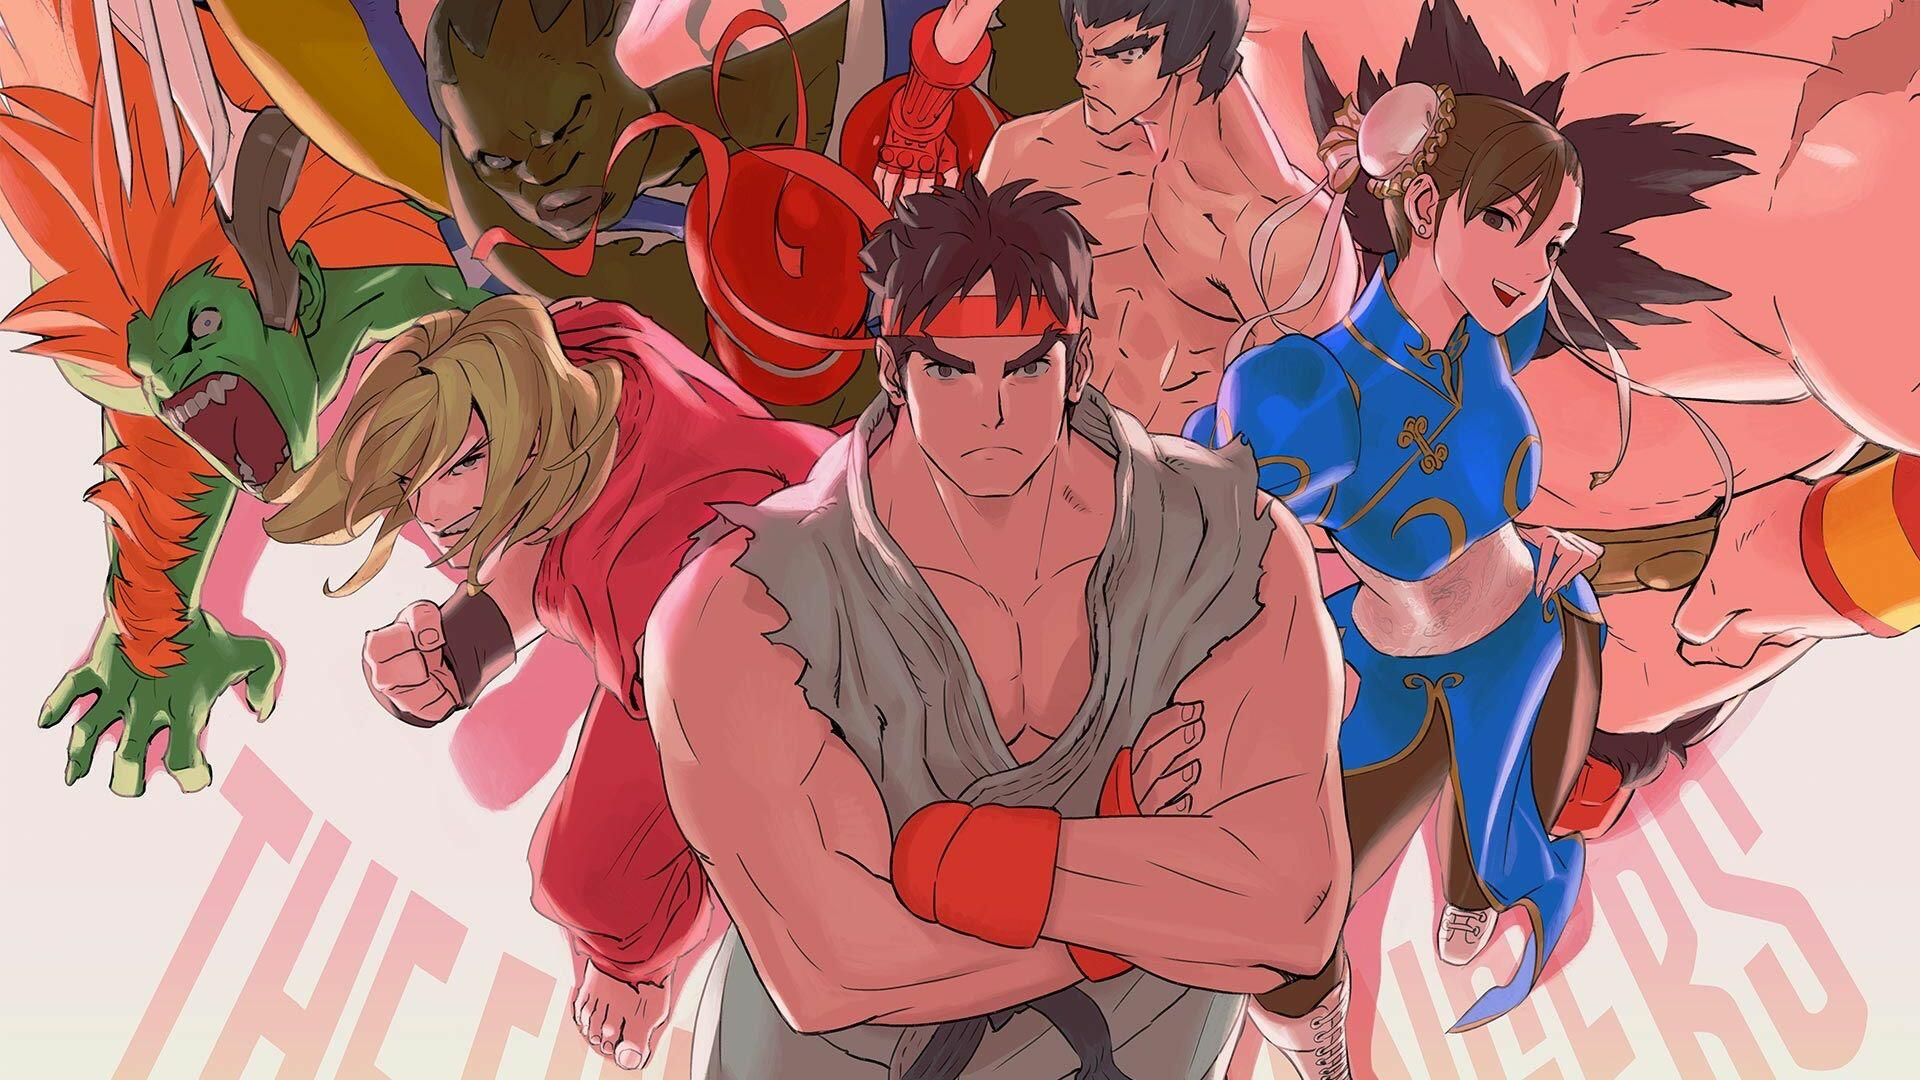 Street Fighter 2's Creator on Why Blocking Was Once a Controversial Issue